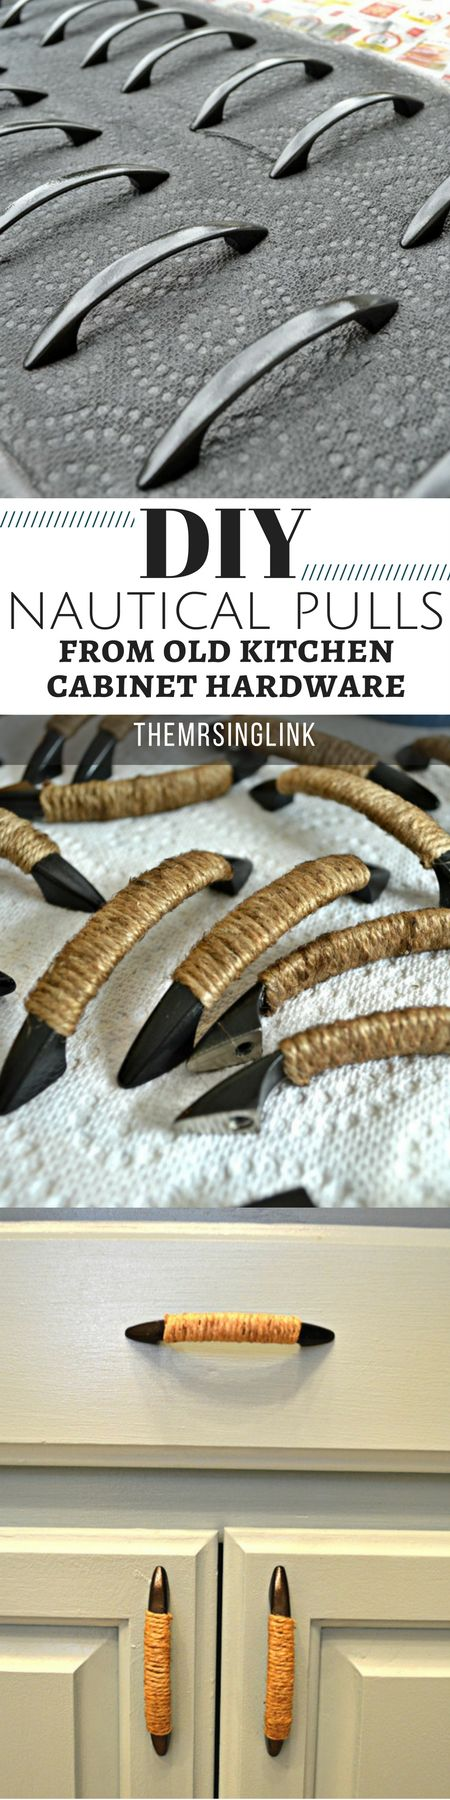 DIY Upgrade Old Kitchen Hardware Into Nautical Pulls | DIY Kitchen Hardware | Kitchen Cabinet Pulls | DIY Kitchen | DIY Home Improvements | theMRSingLink